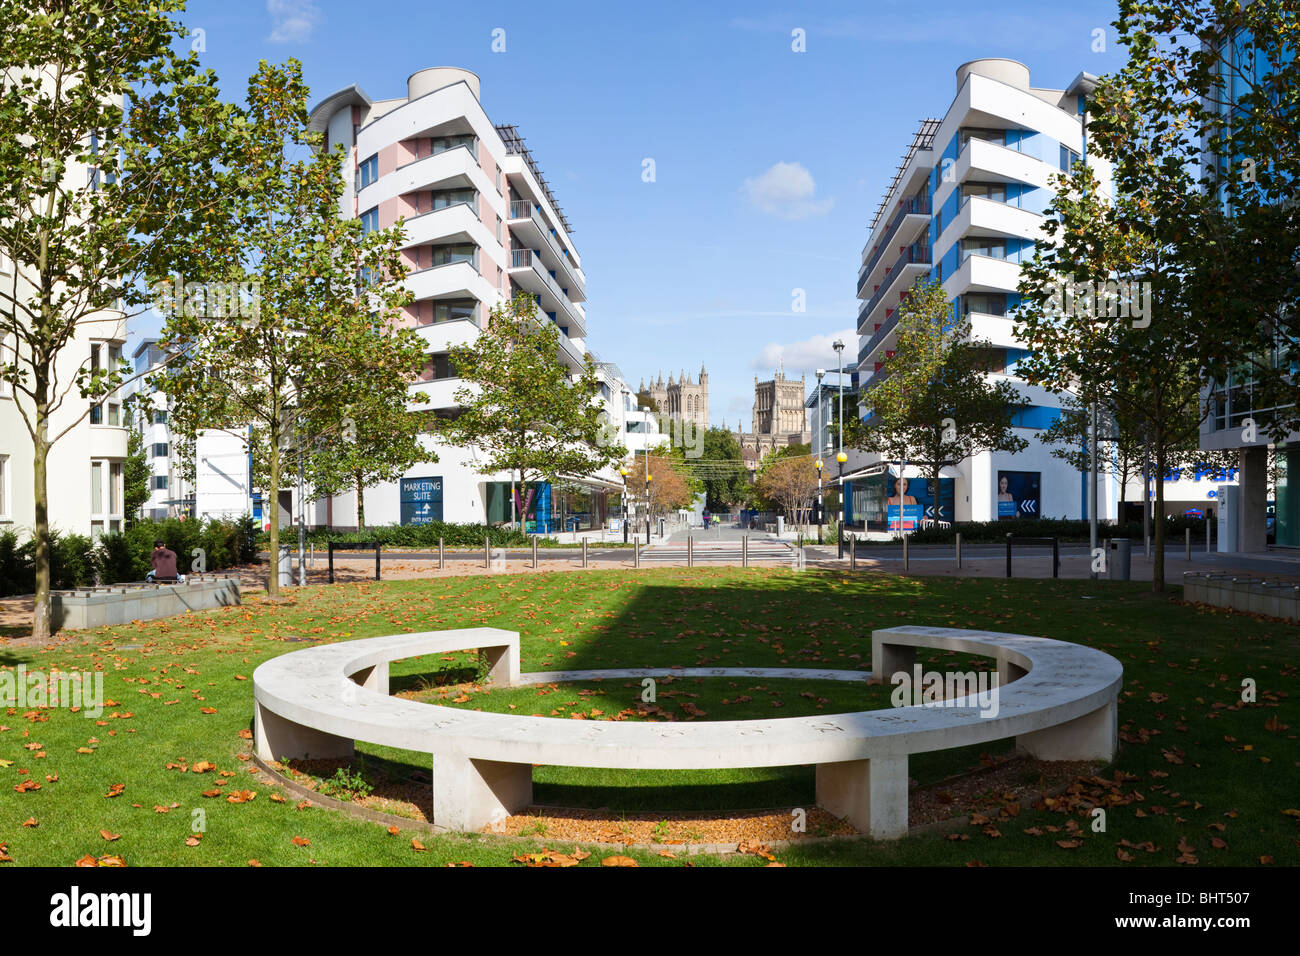 'Domain' by Langlands and Bell, situated in the Crest Nicholson Harbourside Development at Canons Marsh, - Stock Image